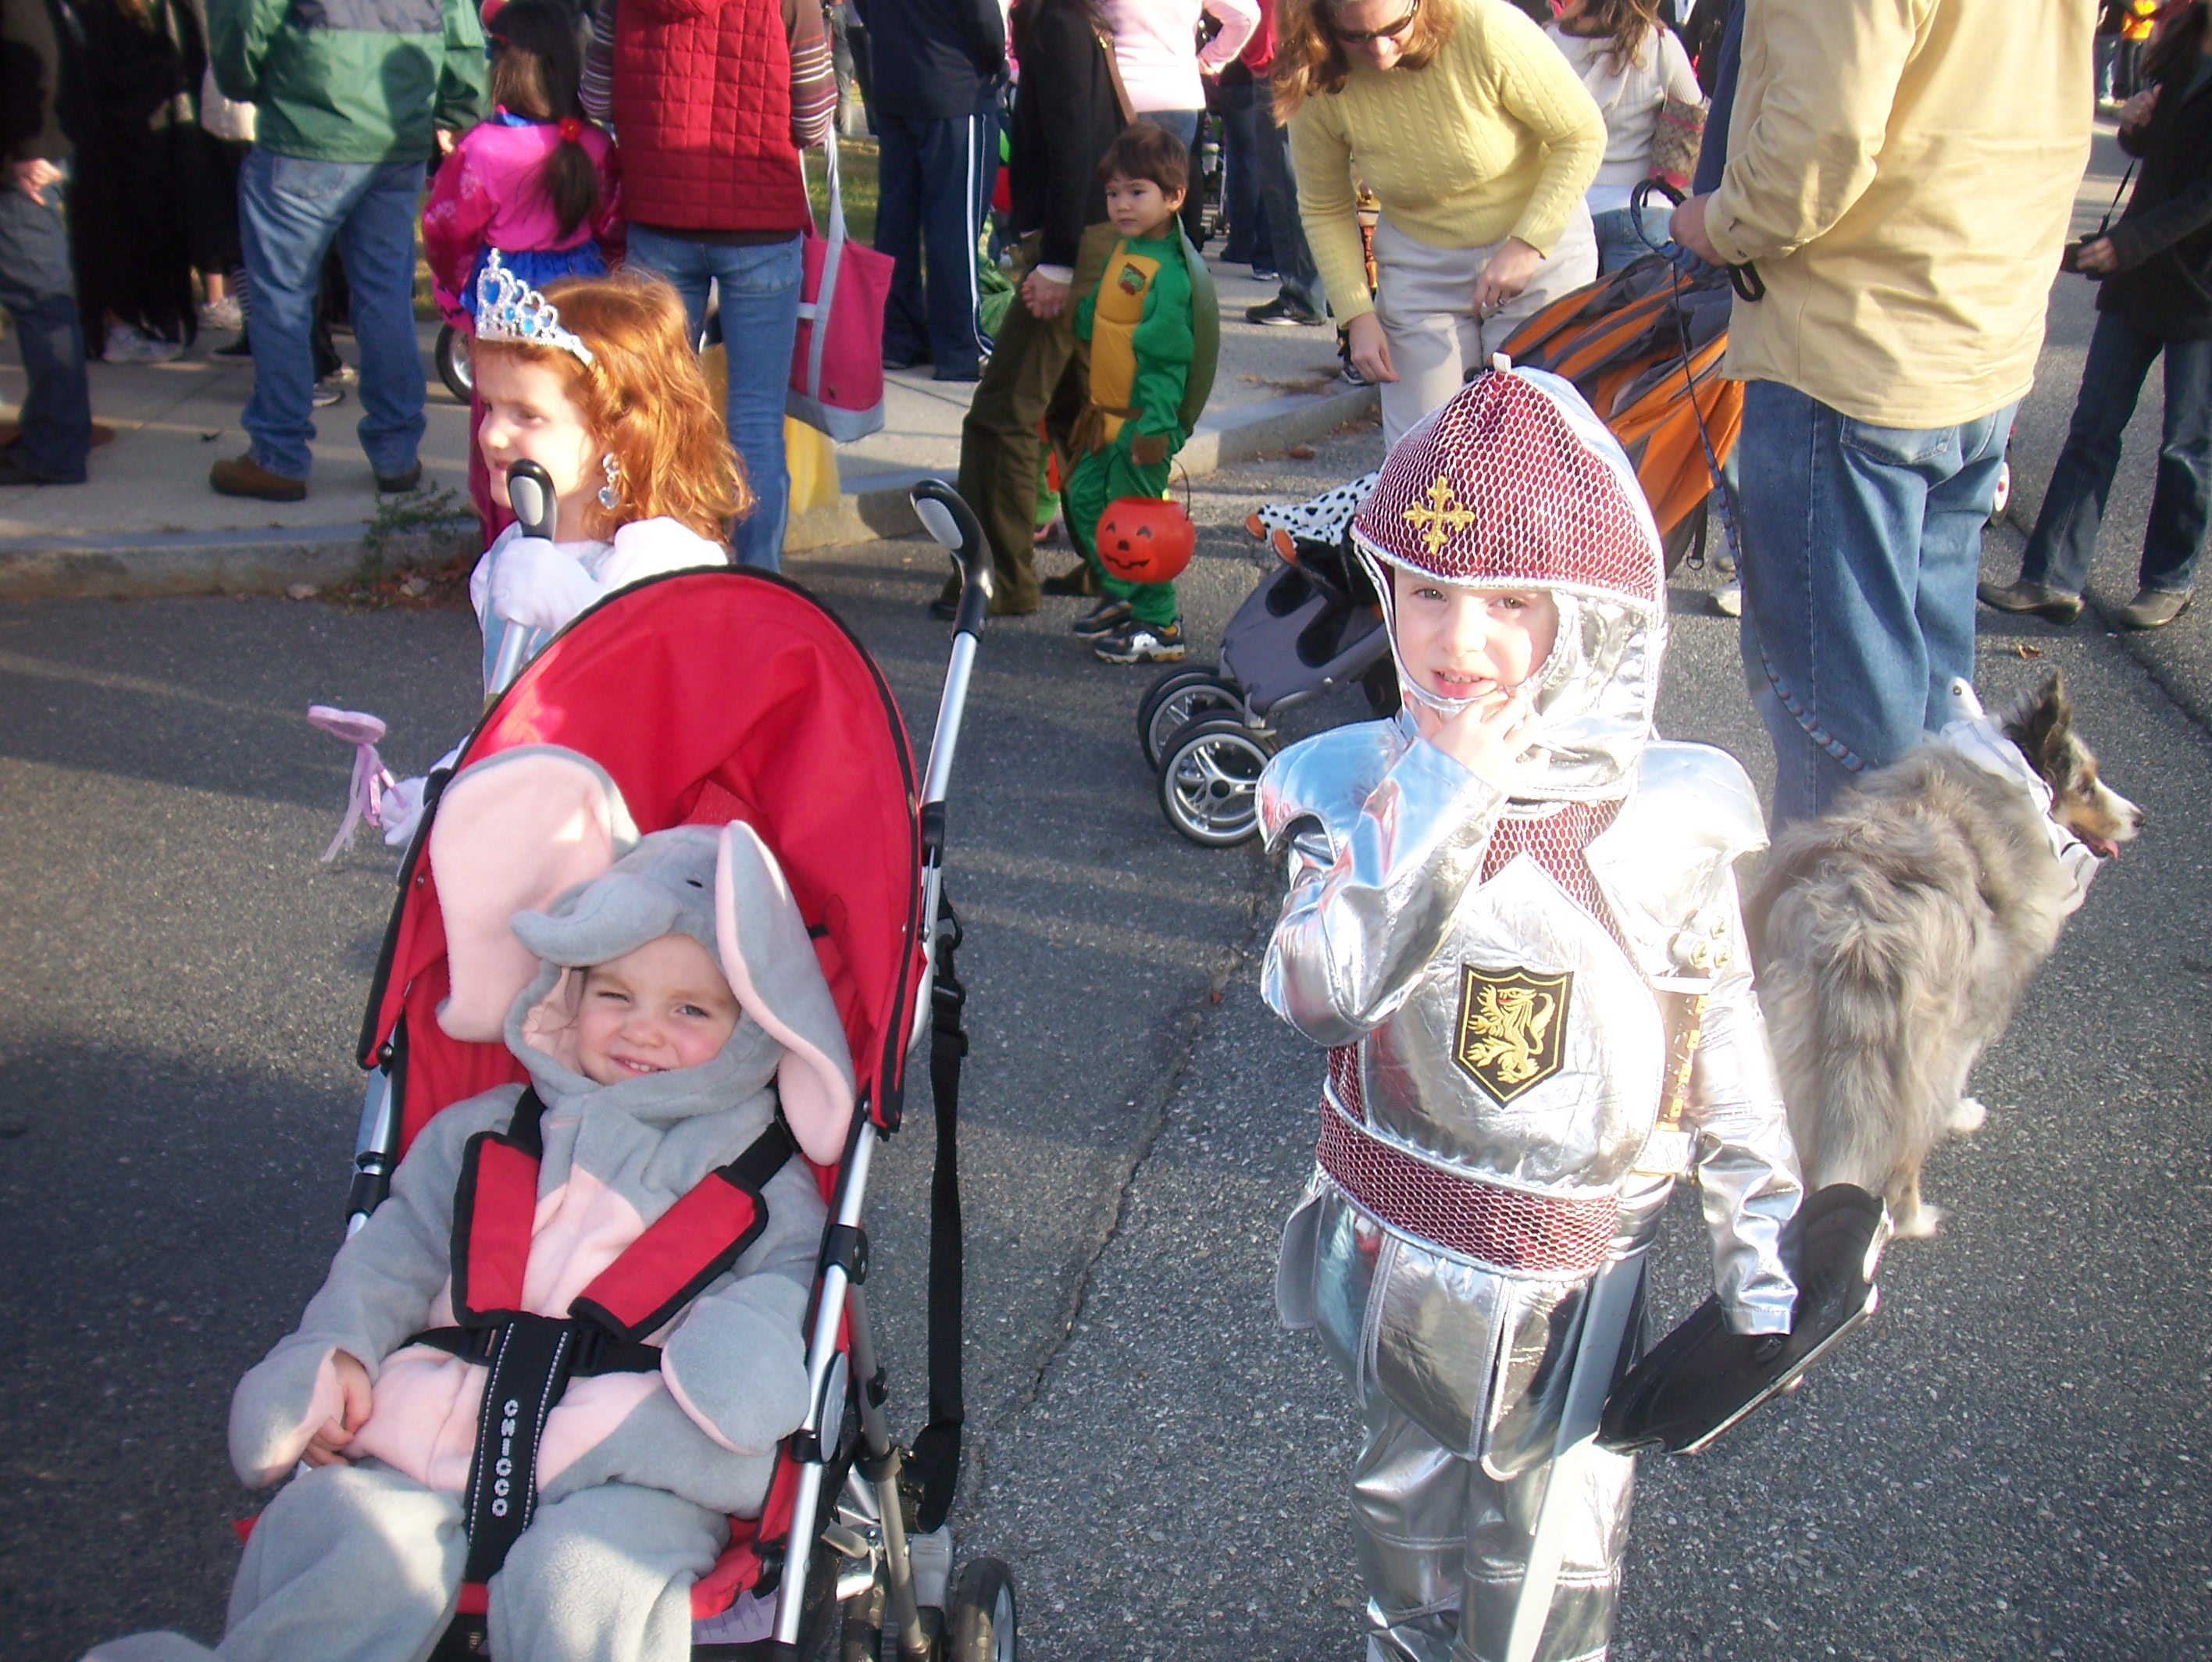 Waiting for the Parade to Start